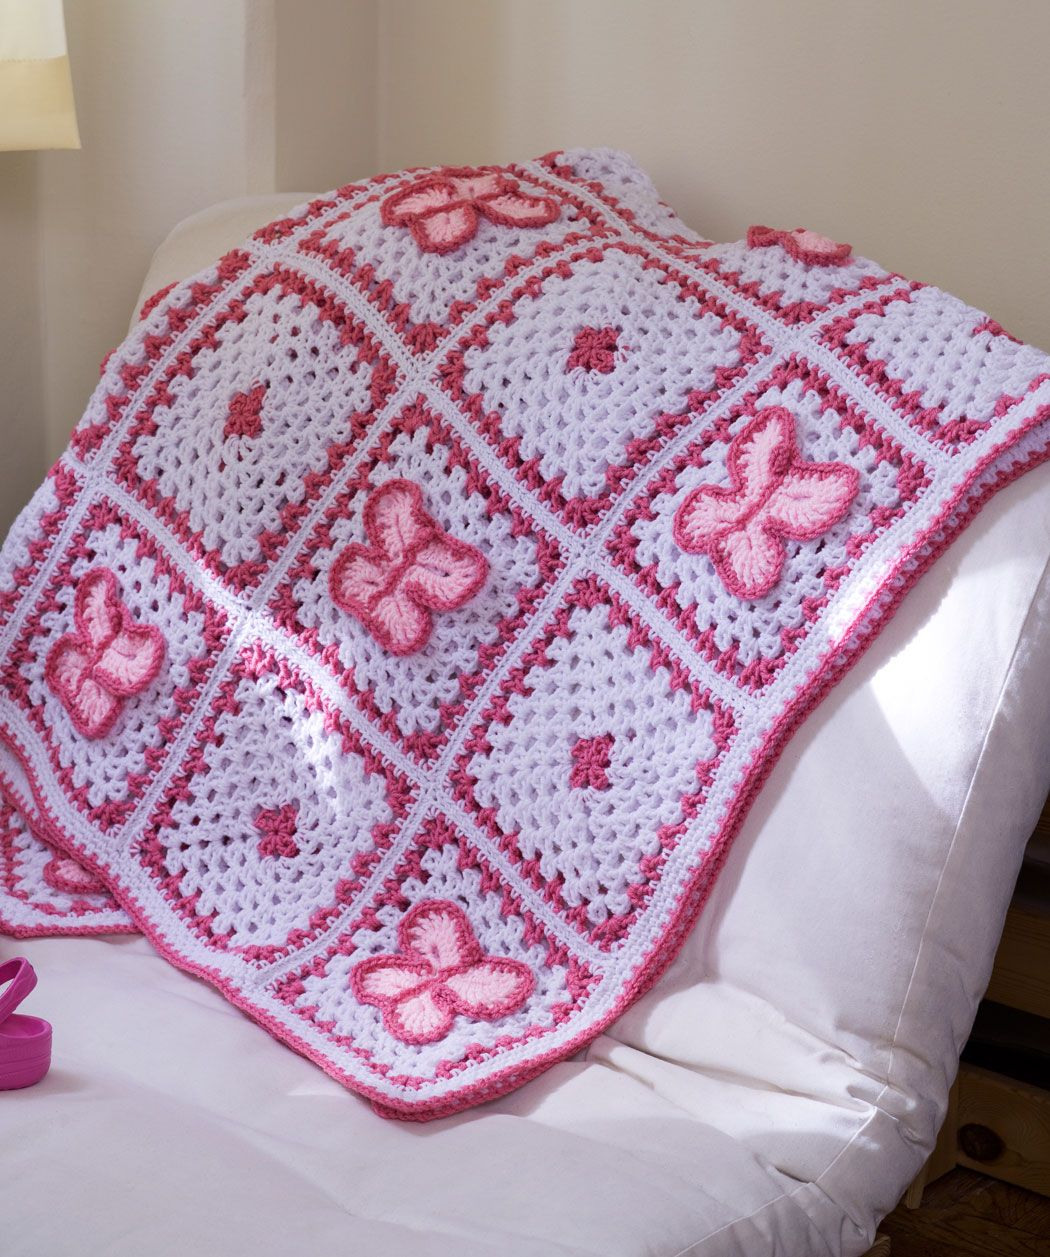 Crochet butterfly throw free pattern crochet squares love crochet butterfly throw free pattern bankloansurffo Image collections